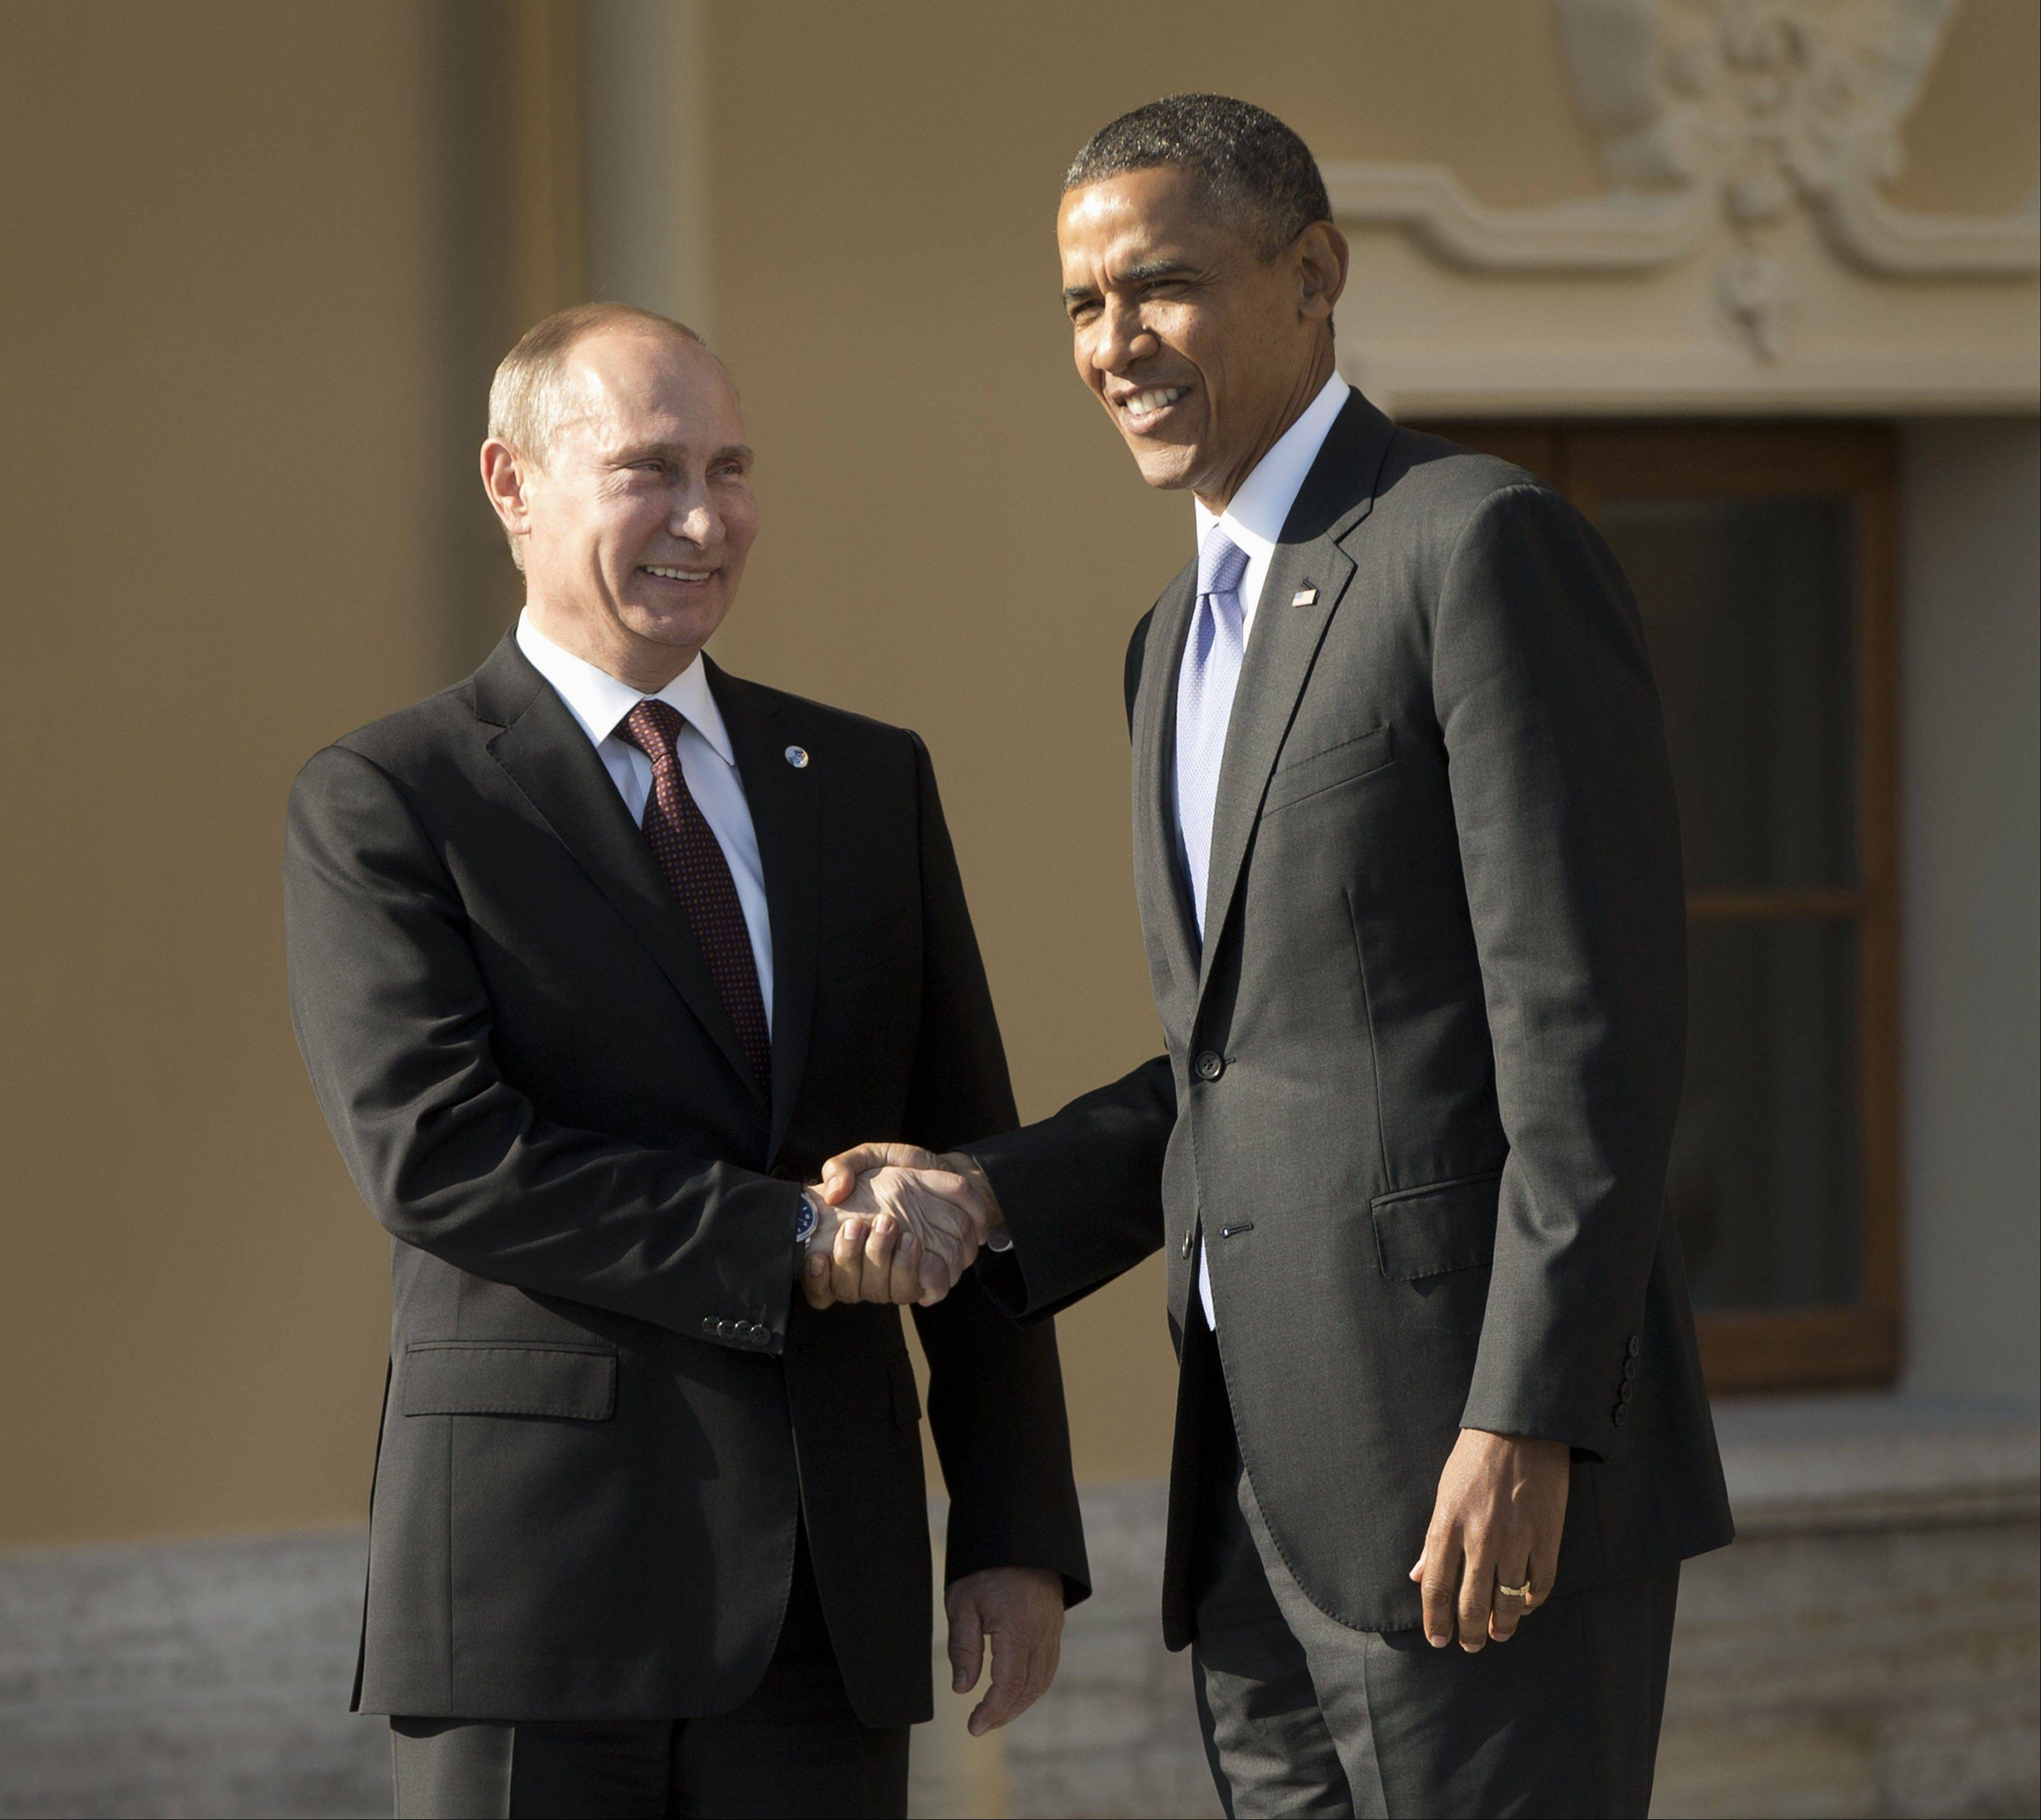 Amid tensions, Obama, Putin put on a happy face